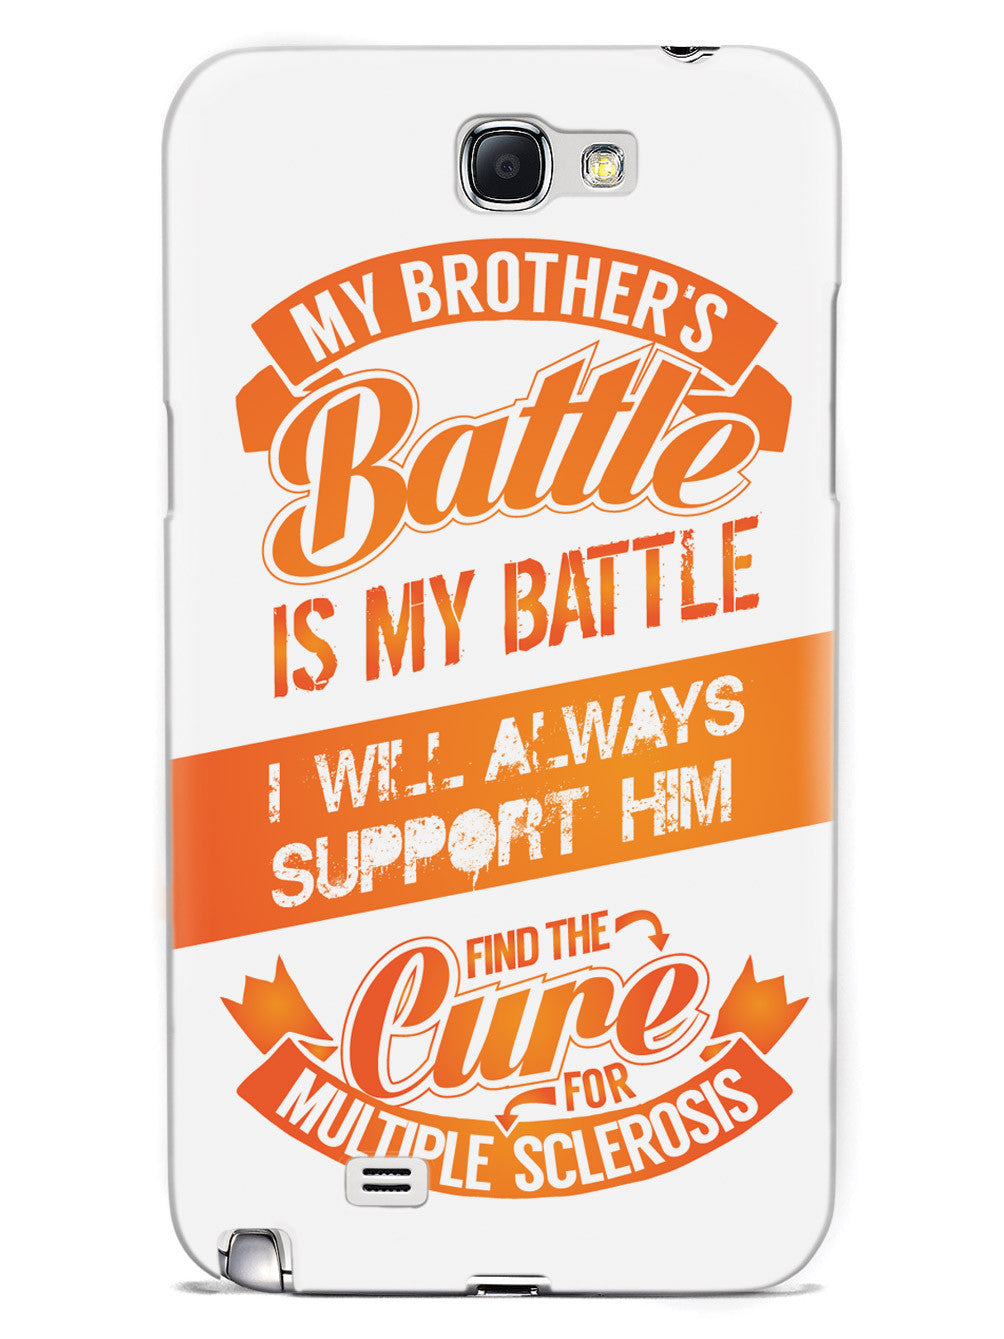 My Brother's Battle - Multiple Sclerosis Awareness/Support Case